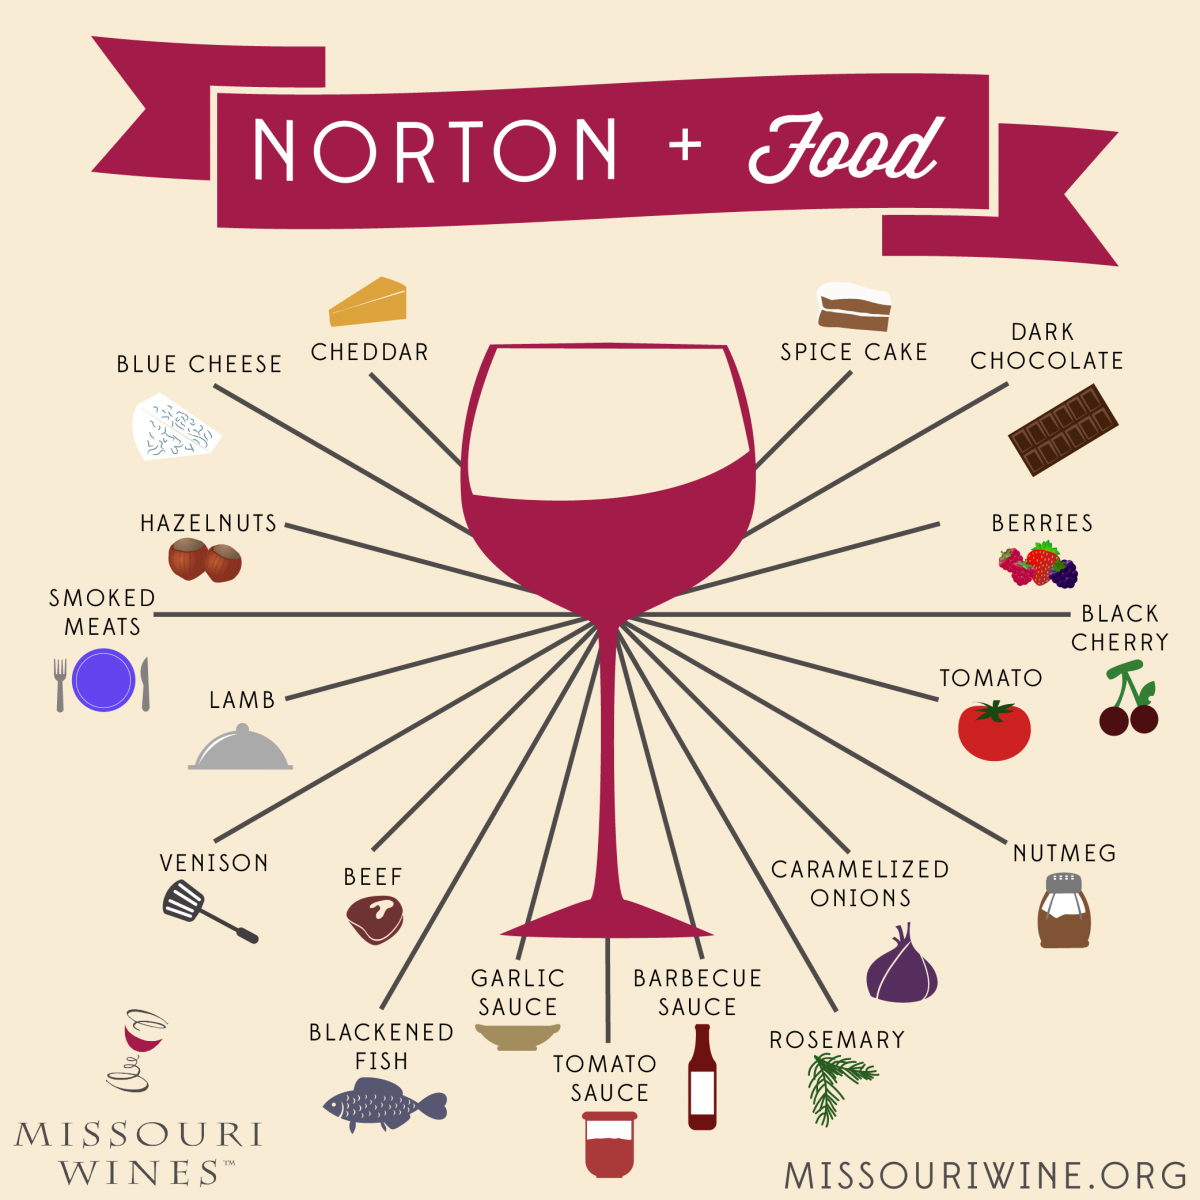 Use This Pairing Guide Infographic To Help You Pair Locally Crafted Norton Wine With Your Favorite Foods For A Delicious Culinary Experience